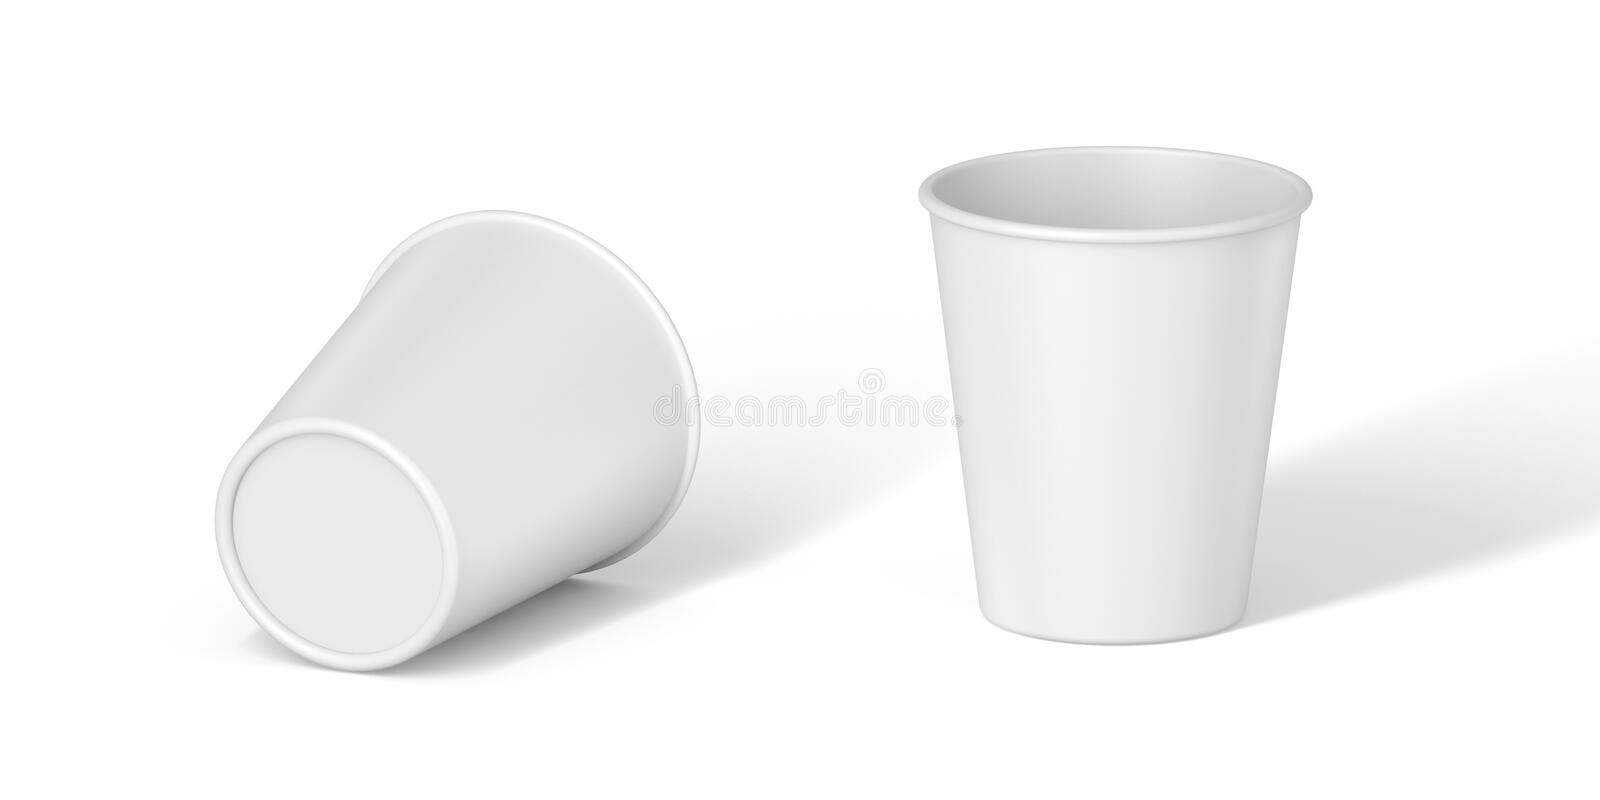 Isolated White Paper Cup on white background. White Paper Cup close up. tasty on white table. Exhibition equipment. Set template for the placement of the logo stock illustration